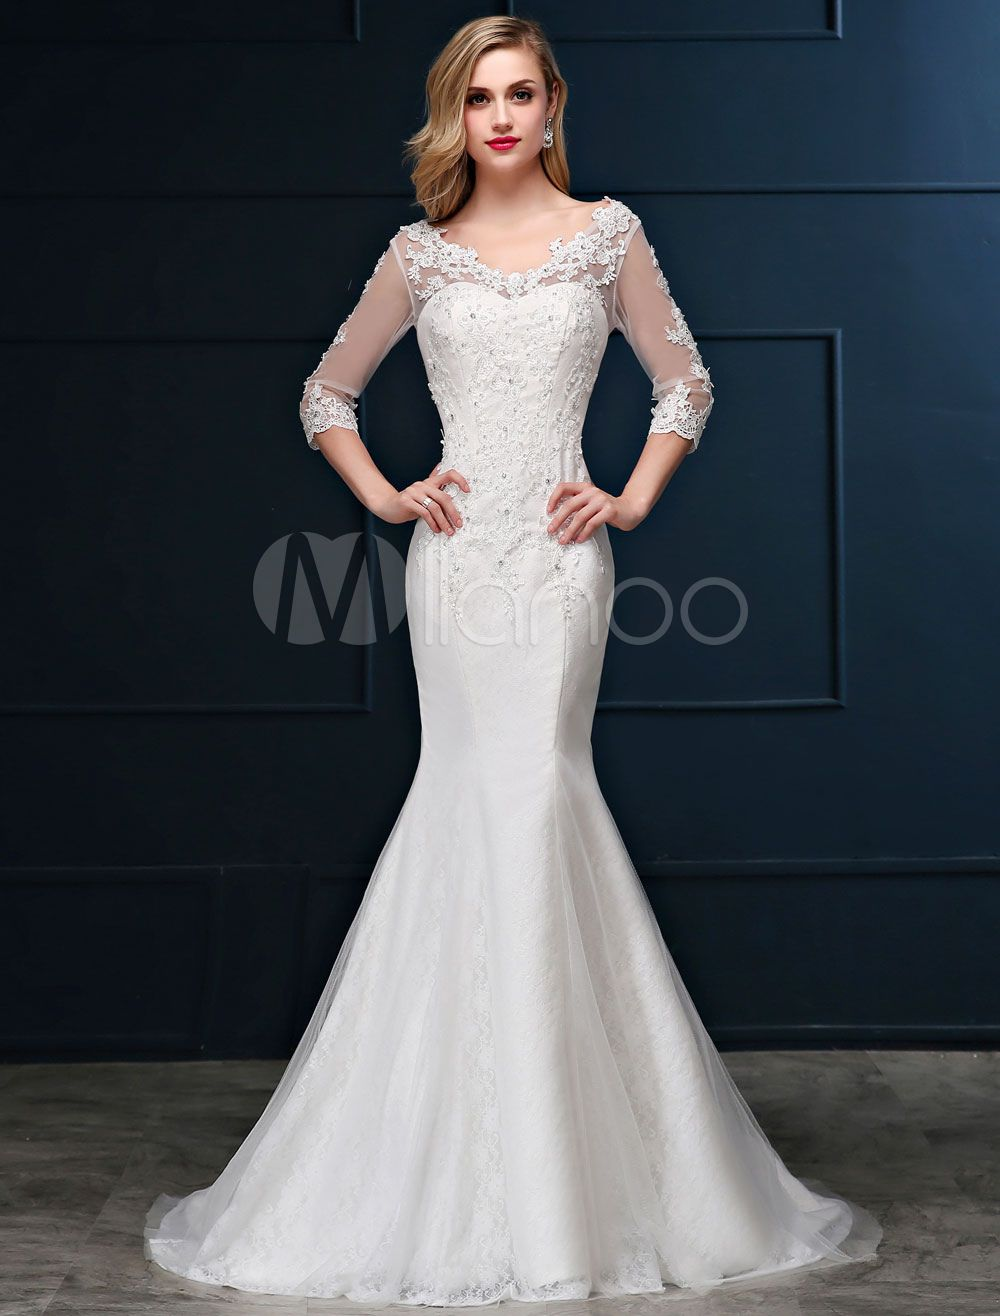 12ef659b03 Mermaid Wedding Dress Lace Long Sleeve Bridal Dress V Neck Beaded Backless  Slim Fit Ivory Wedding Gown With Train